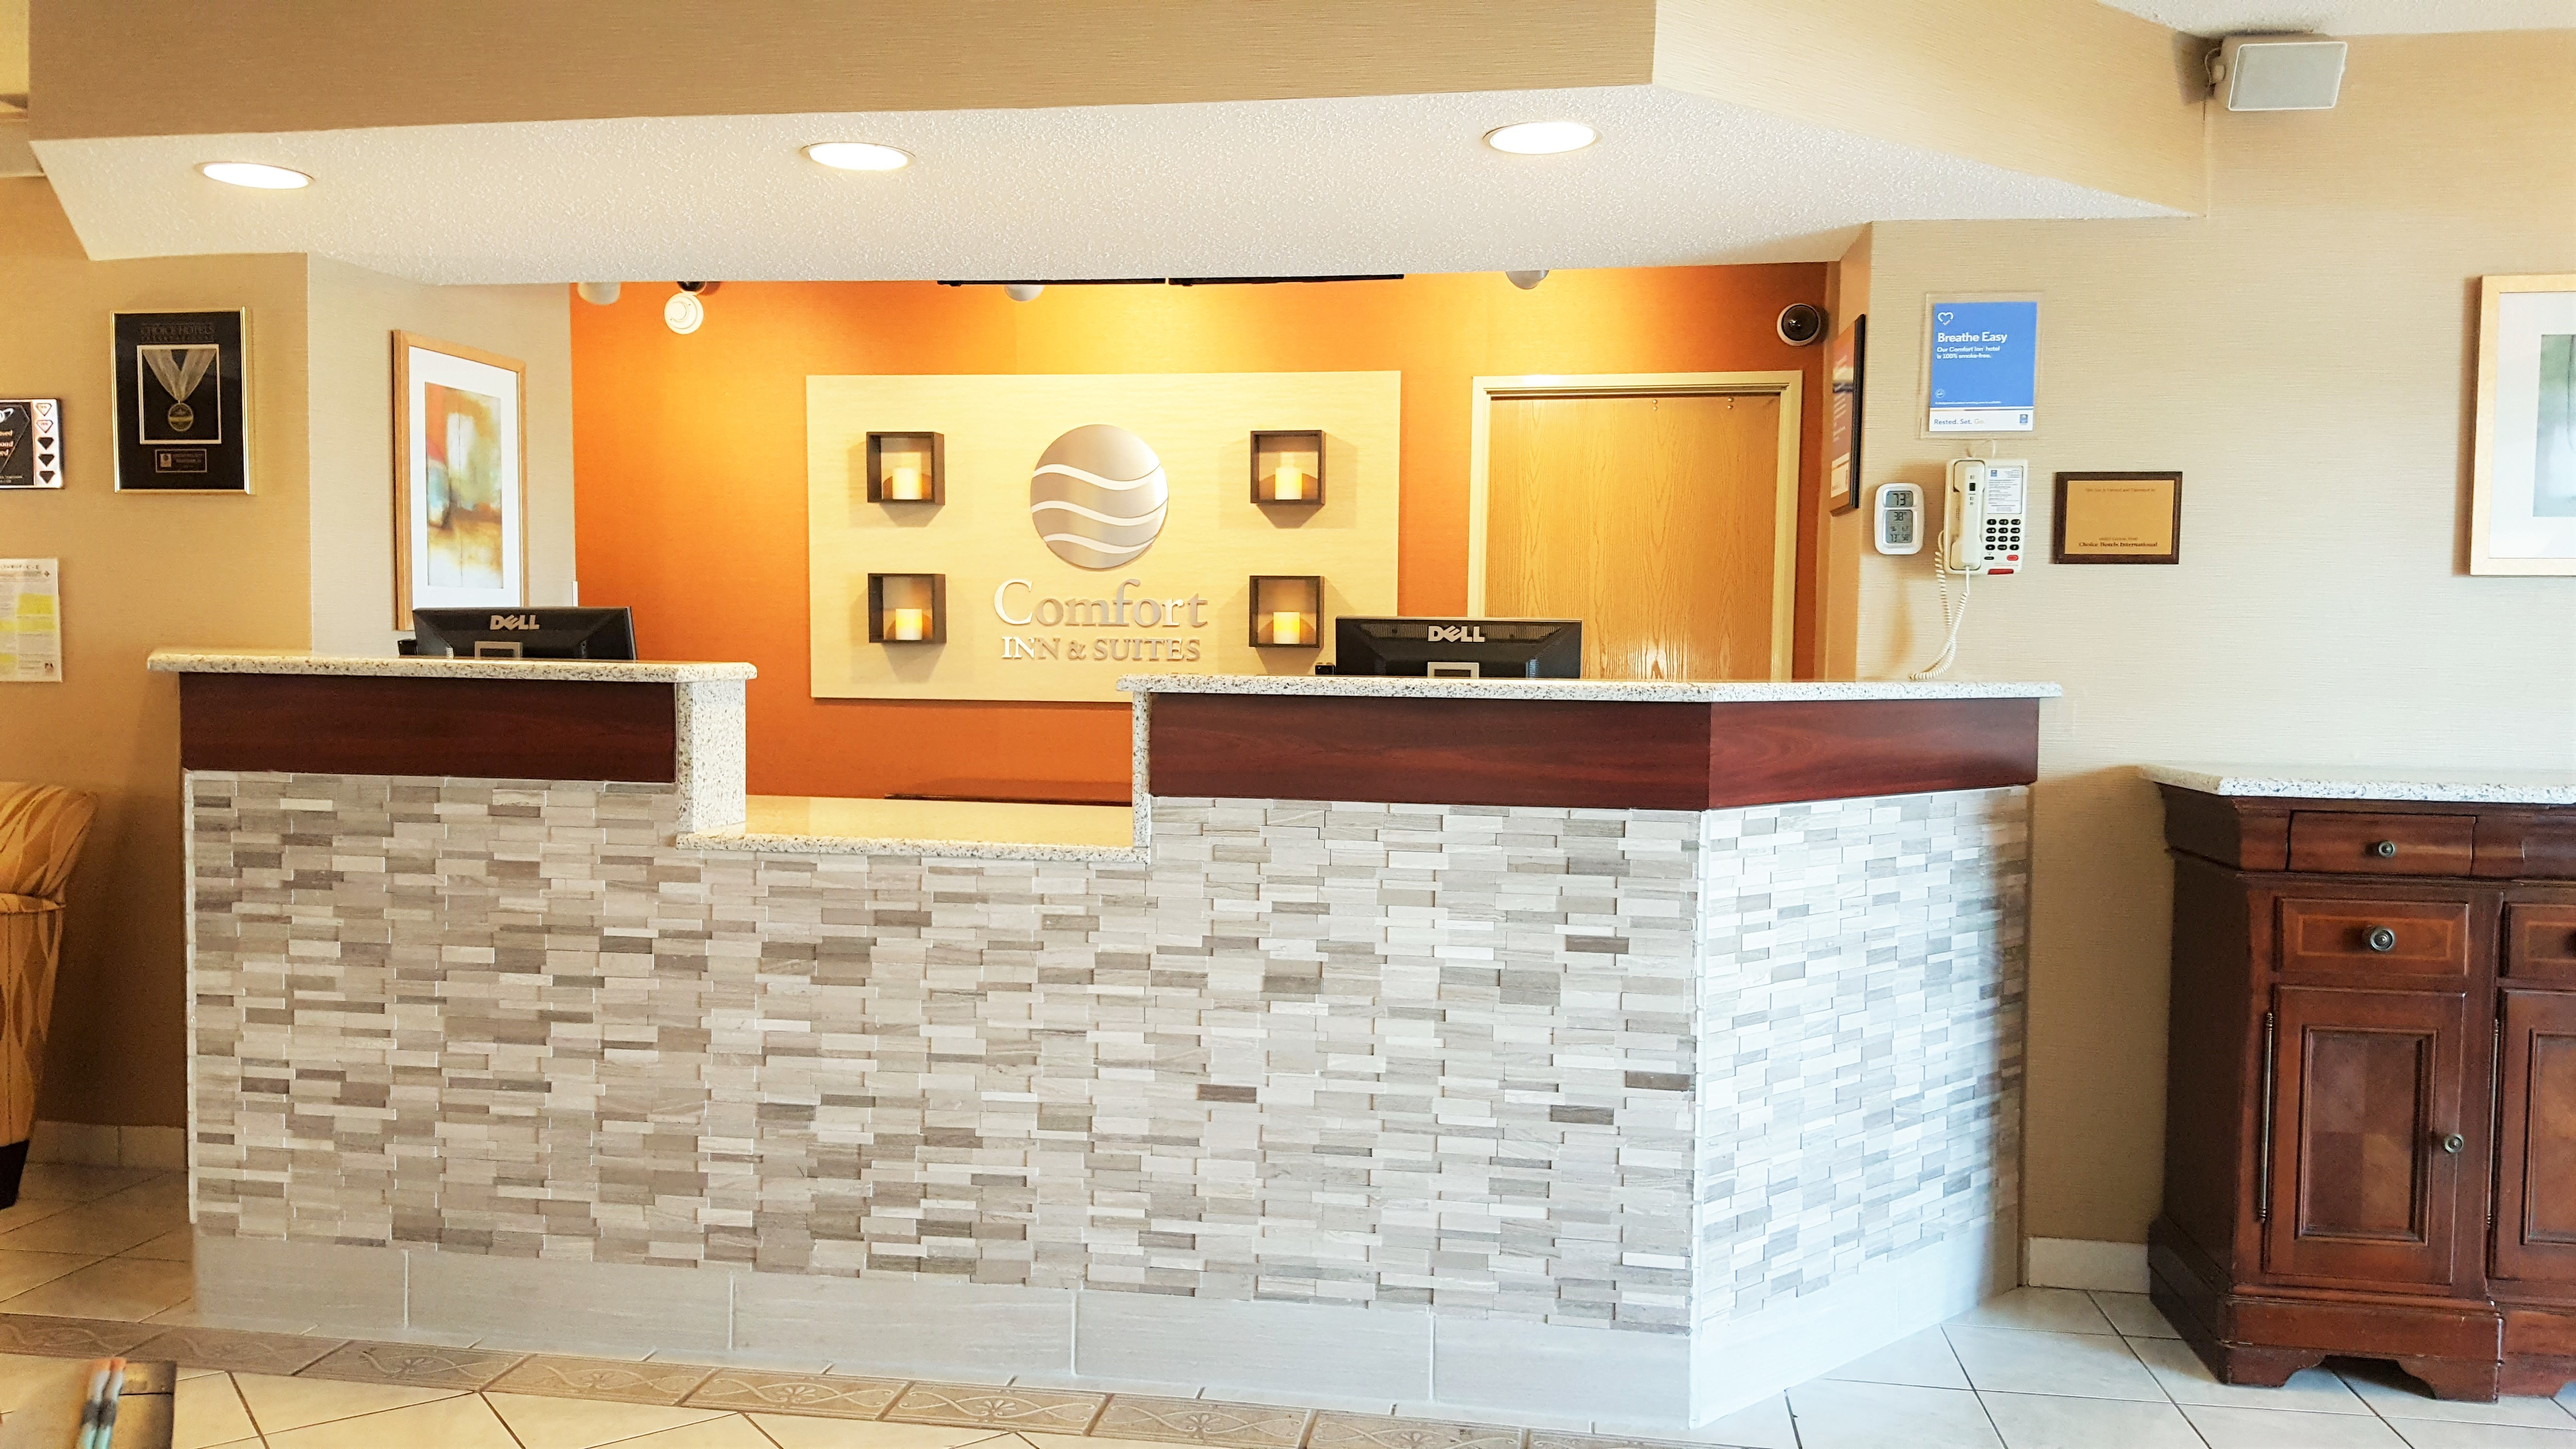 Comfort Inn And Suites Wilkes Barre Linkedin